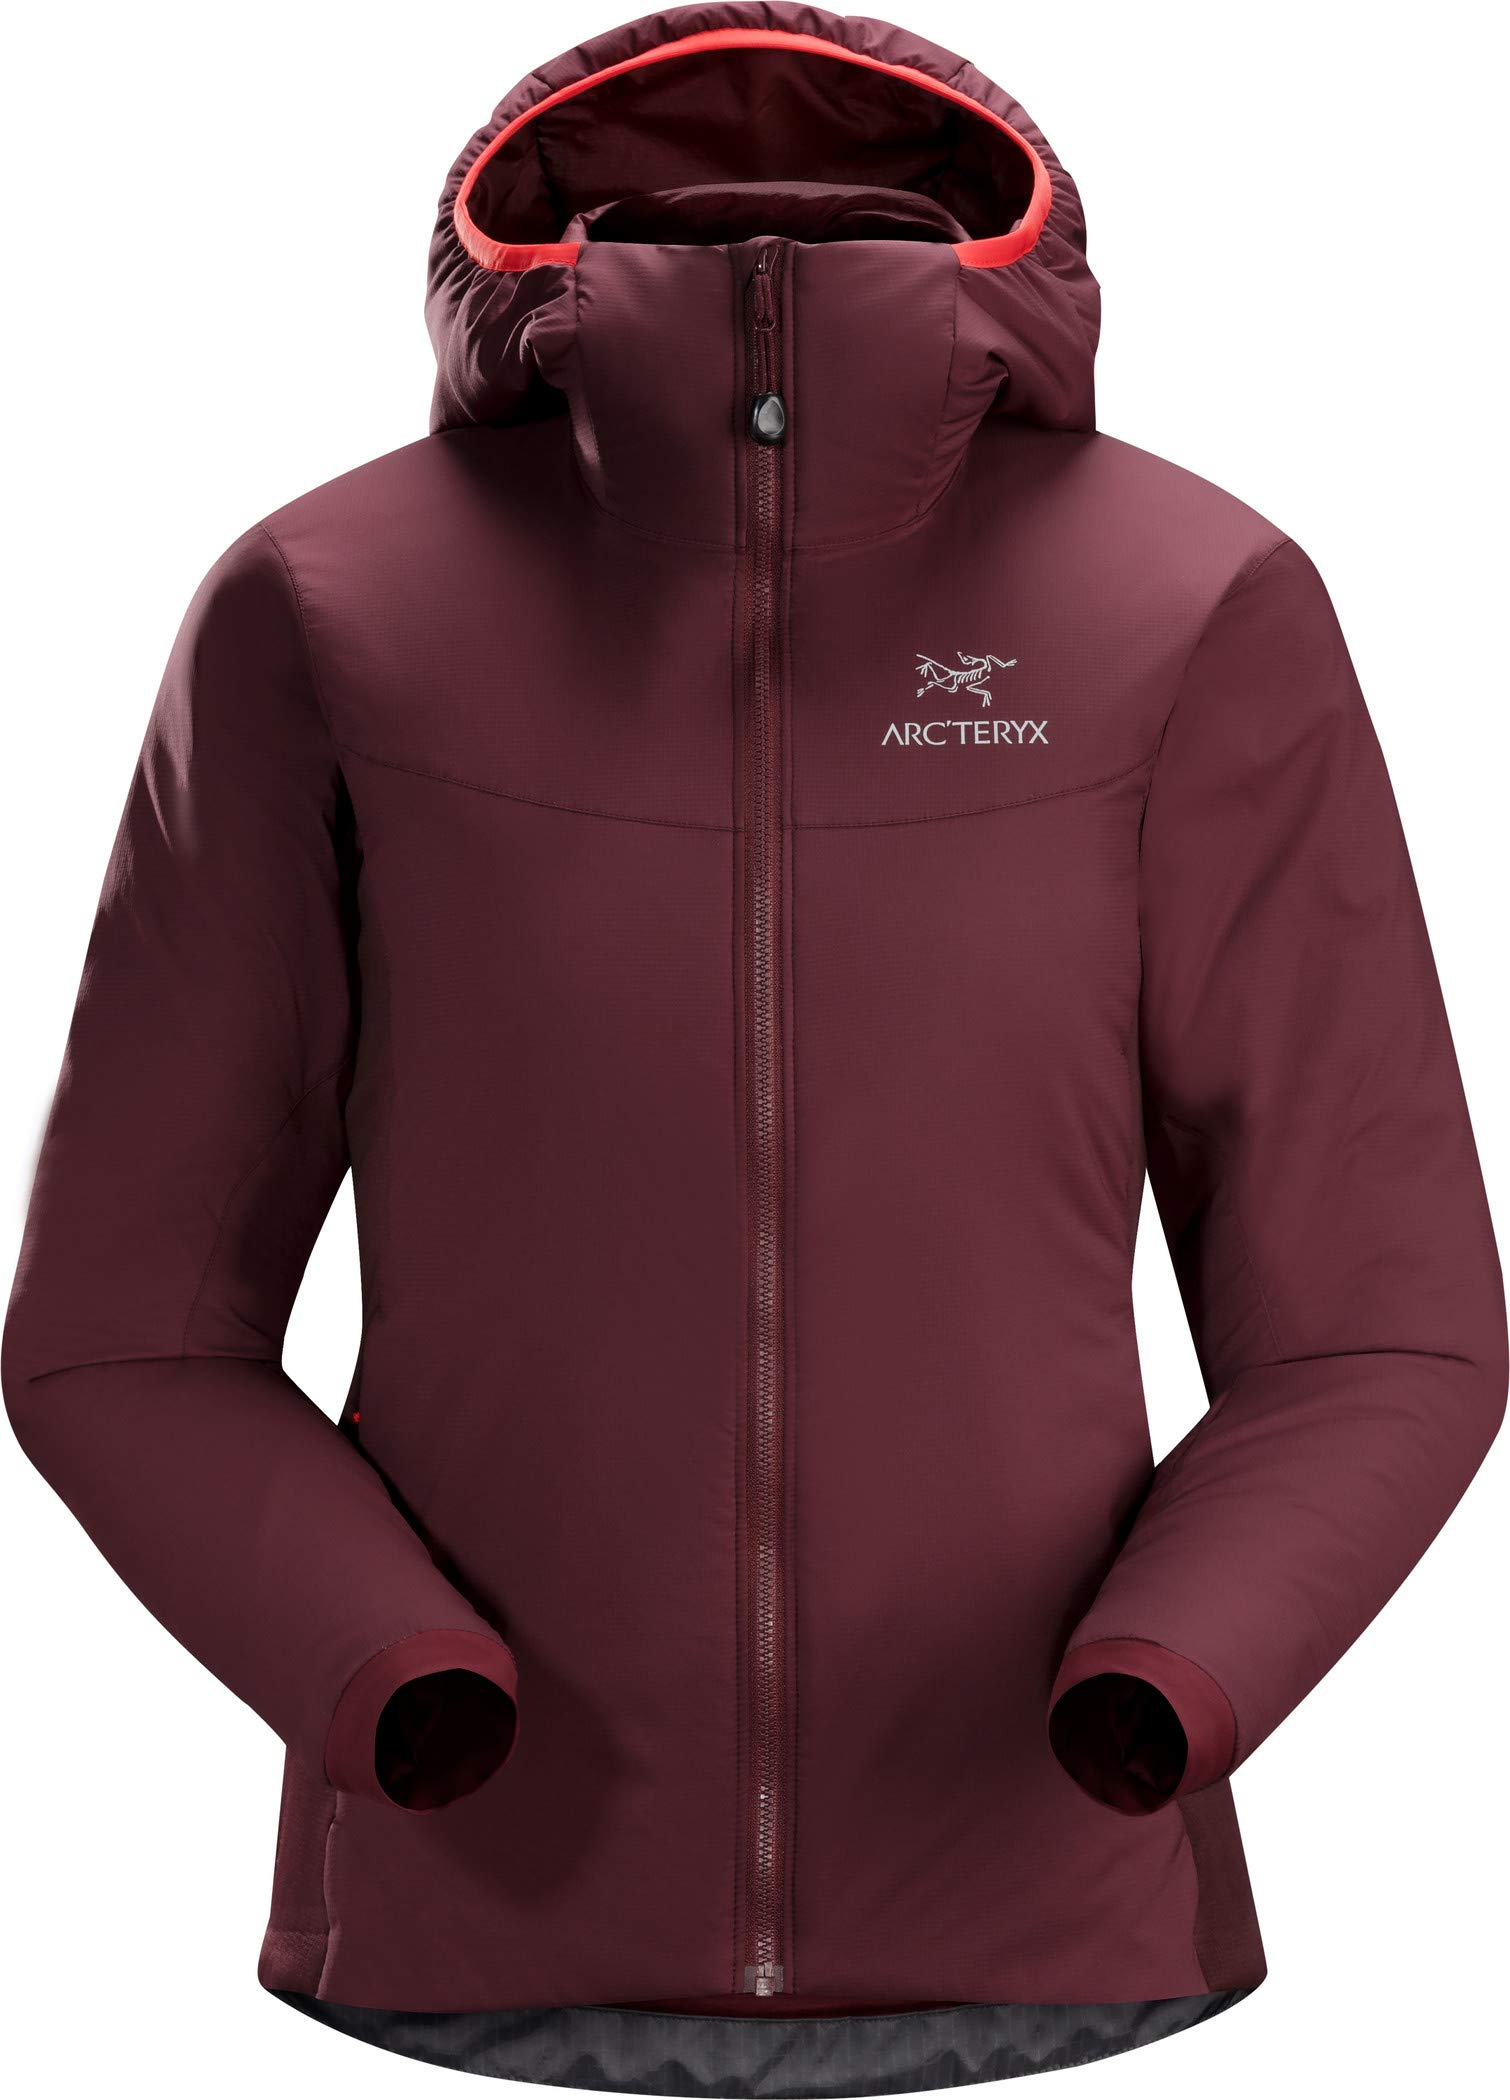 Arc'teryx Atom LT Hoody Women's (Crimson, Large)